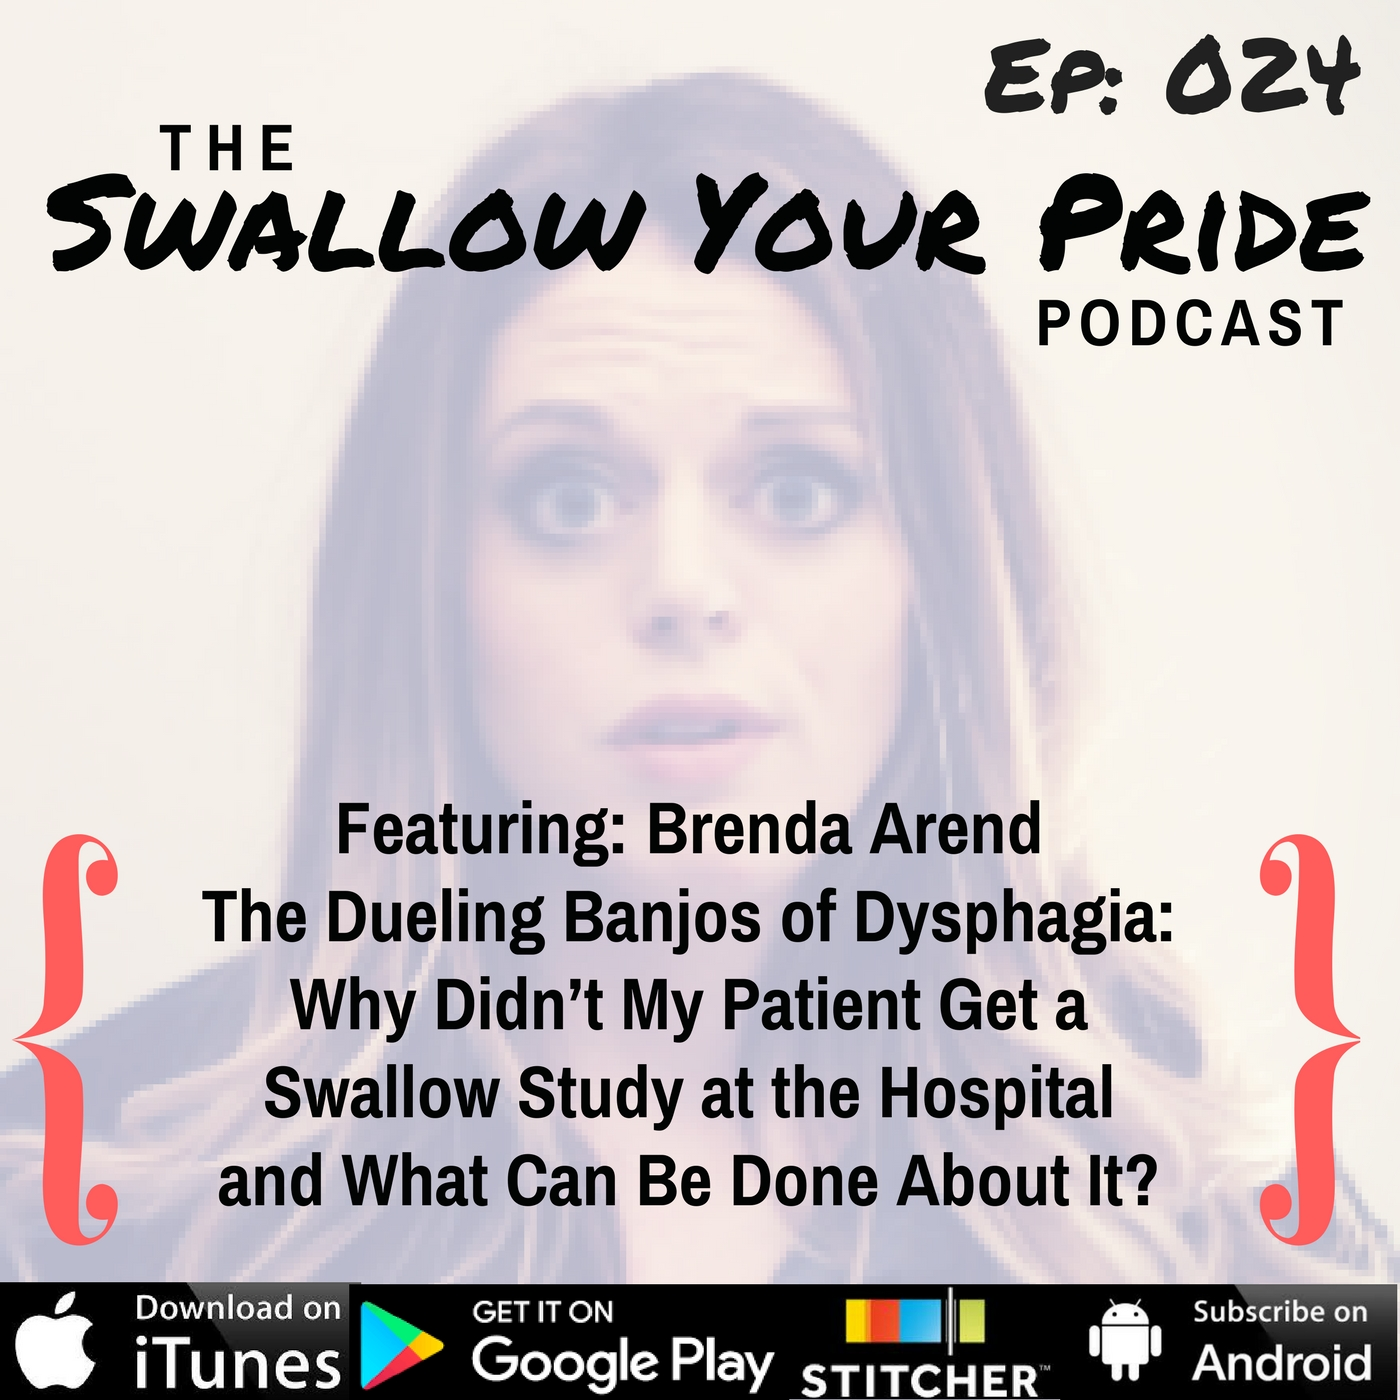 024 – Brenda Arend, MA, CCC-SLP – The Dueling Banjos of Dysphagia:  Why Didn't My Patient Get a Swallow Study at the Hospital and What Can Be Done About It?